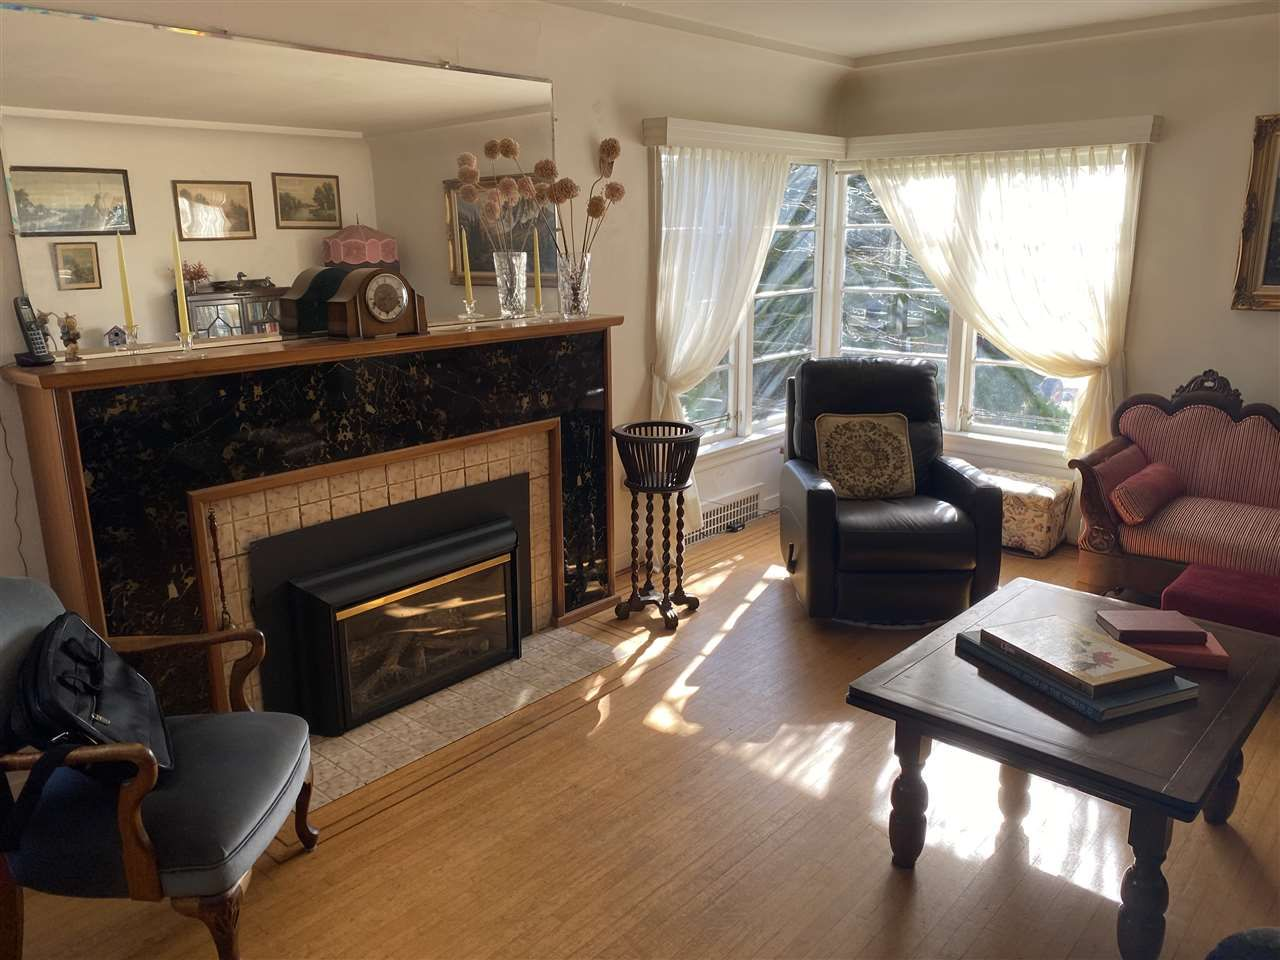 Photo 4: Photos: 729 THIRD Avenue in New Westminster: Uptown NW House for sale : MLS®# R2552449